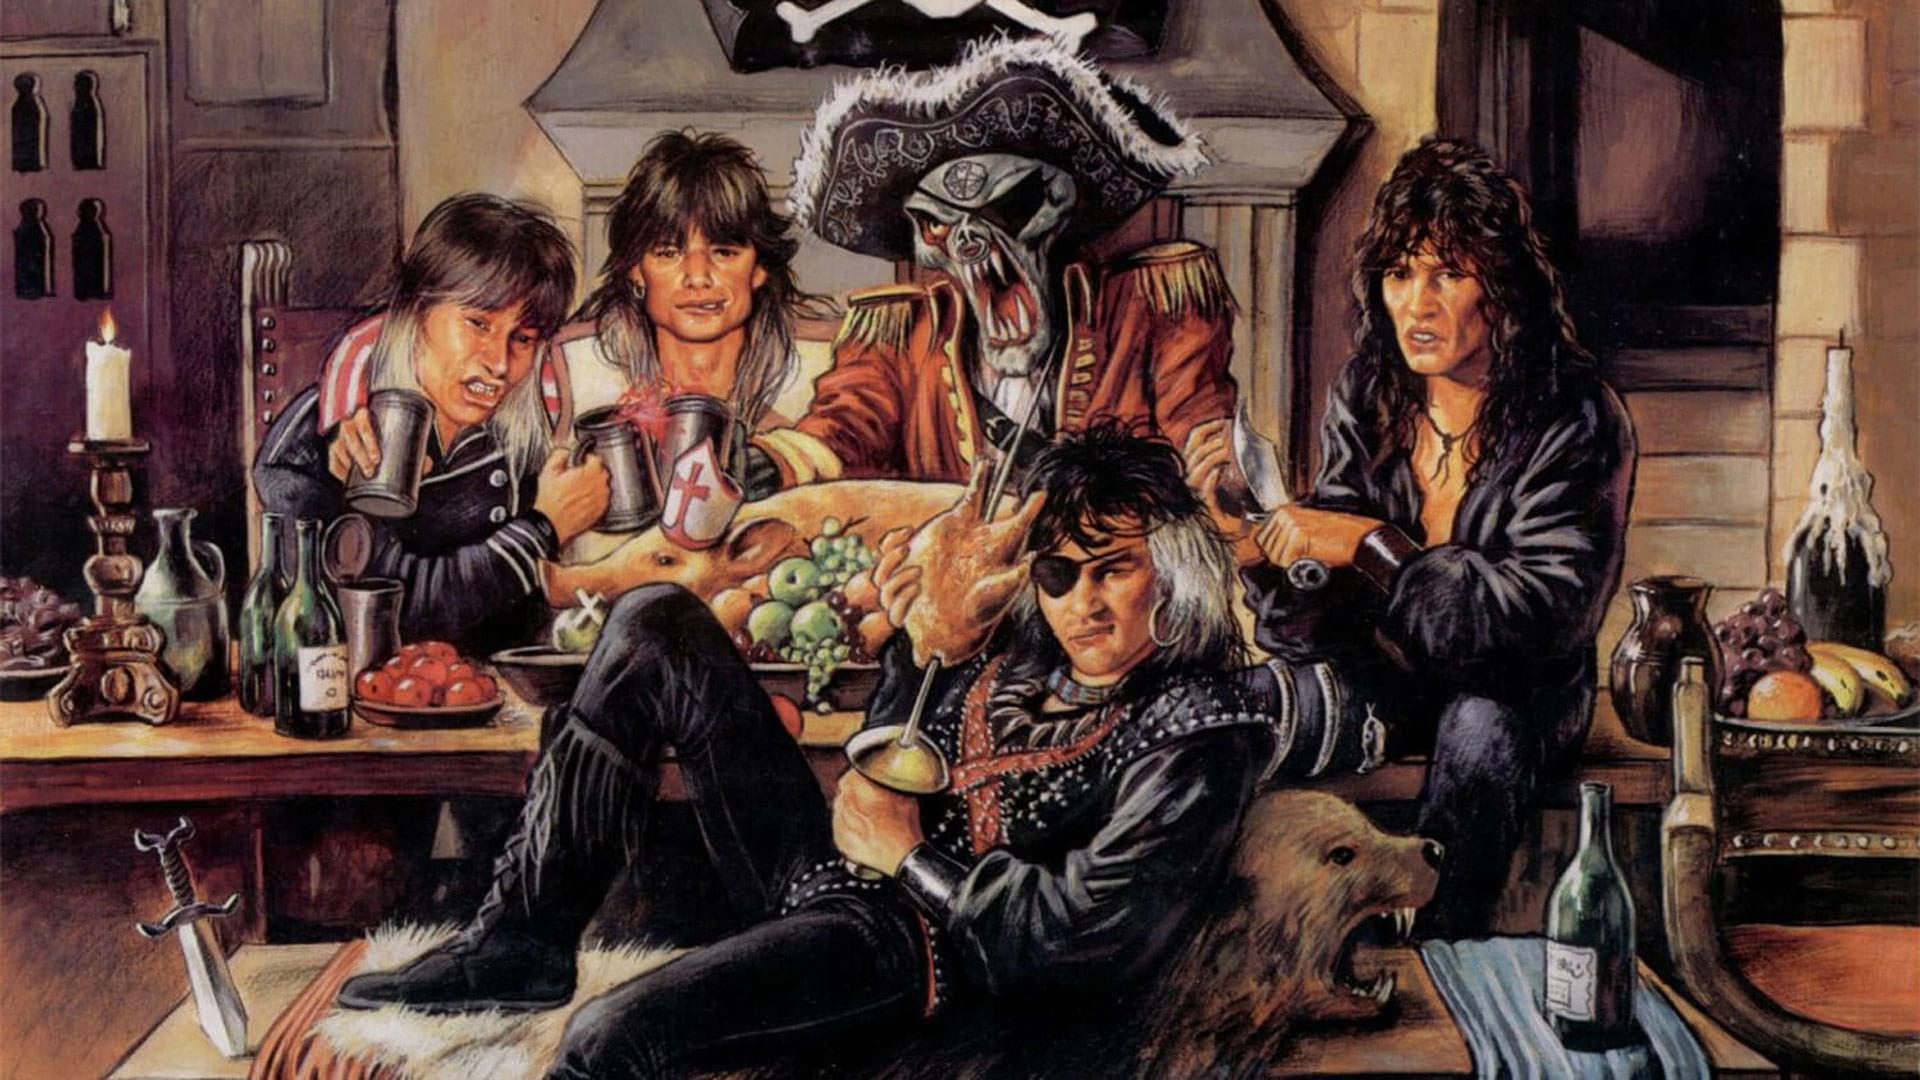 29 Years Ago Running Wild Release Port Royal Its Time For The Red